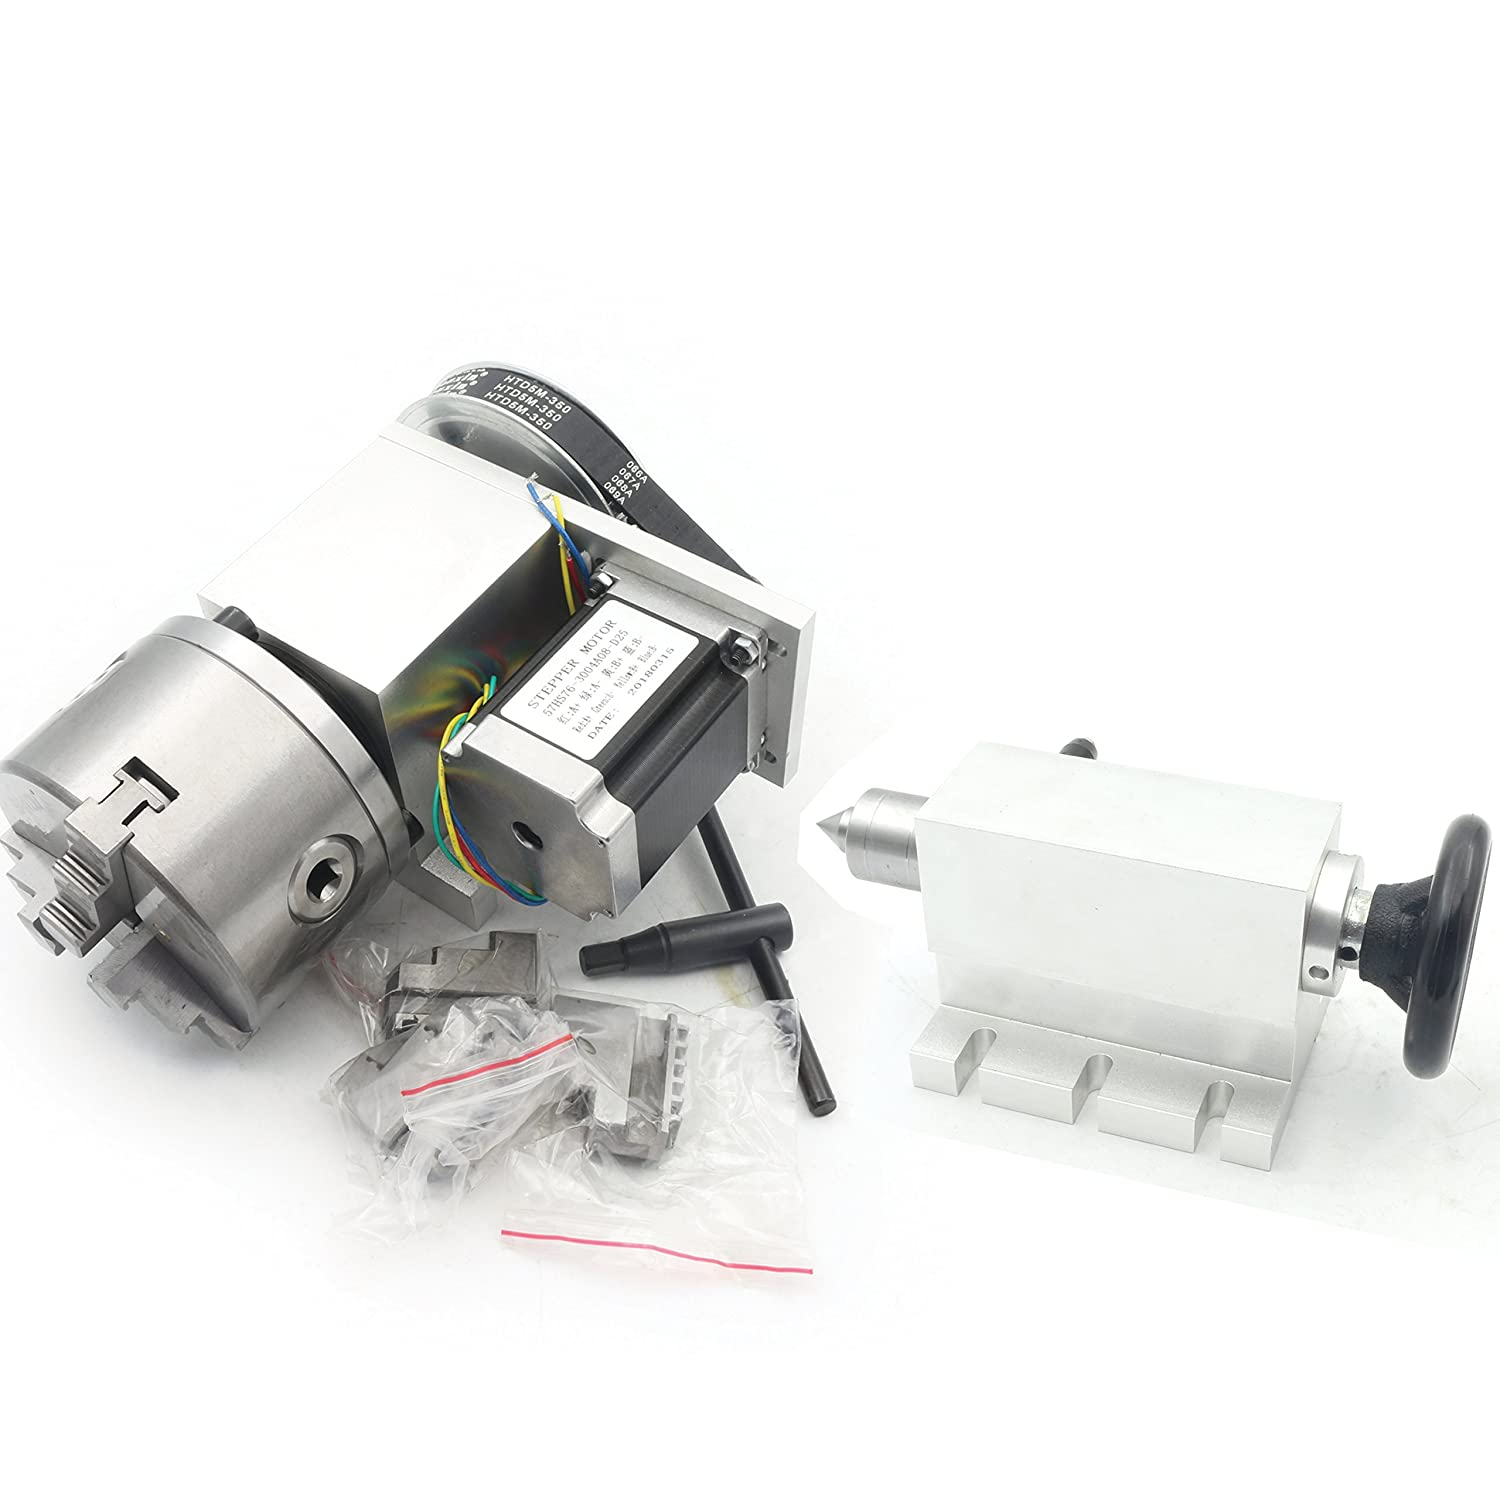 Changzhou Rattm Motor Co Reducing ratio:6:1 K11-100mm CNC Router Engraving Machine Rotational A 4th Axis 100mm 3 Jaw Chuck+65mm Tailstock Ltd